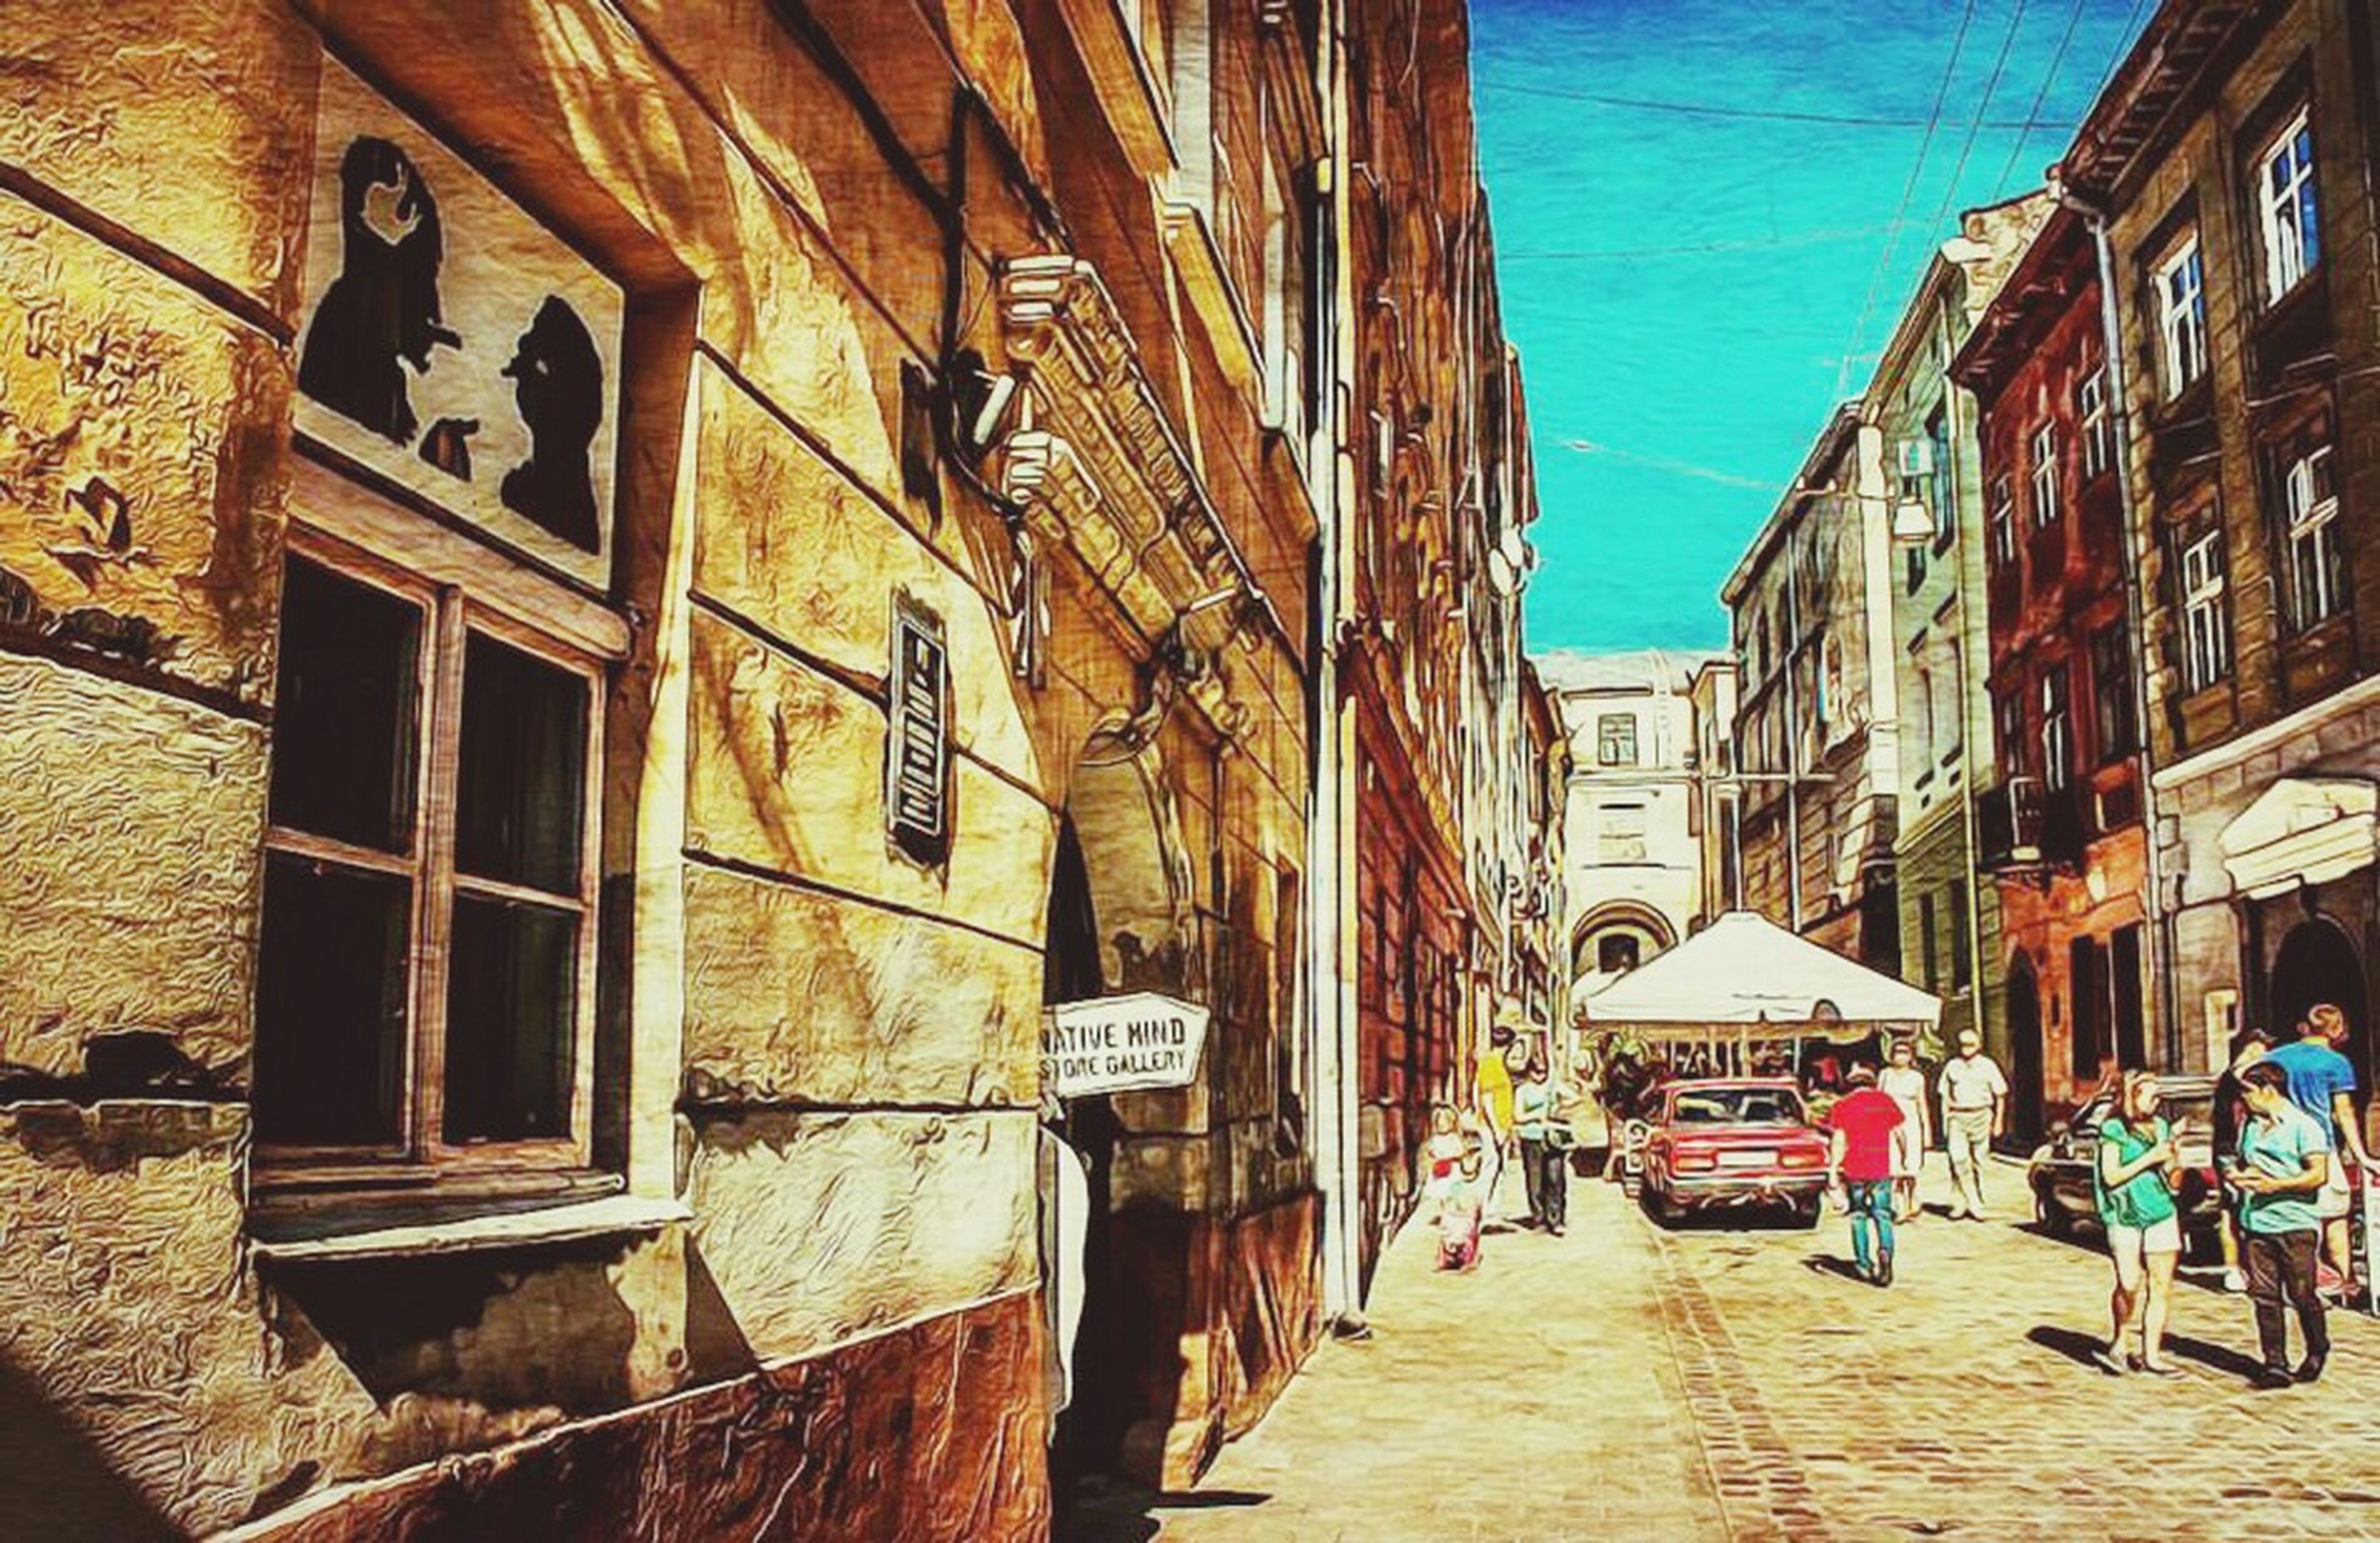 architecture, building exterior, built structure, street, the way forward, residential building, residential structure, city, building, alley, cobblestone, narrow, city life, diminishing perspective, incidental people, town, old town, day, outdoors